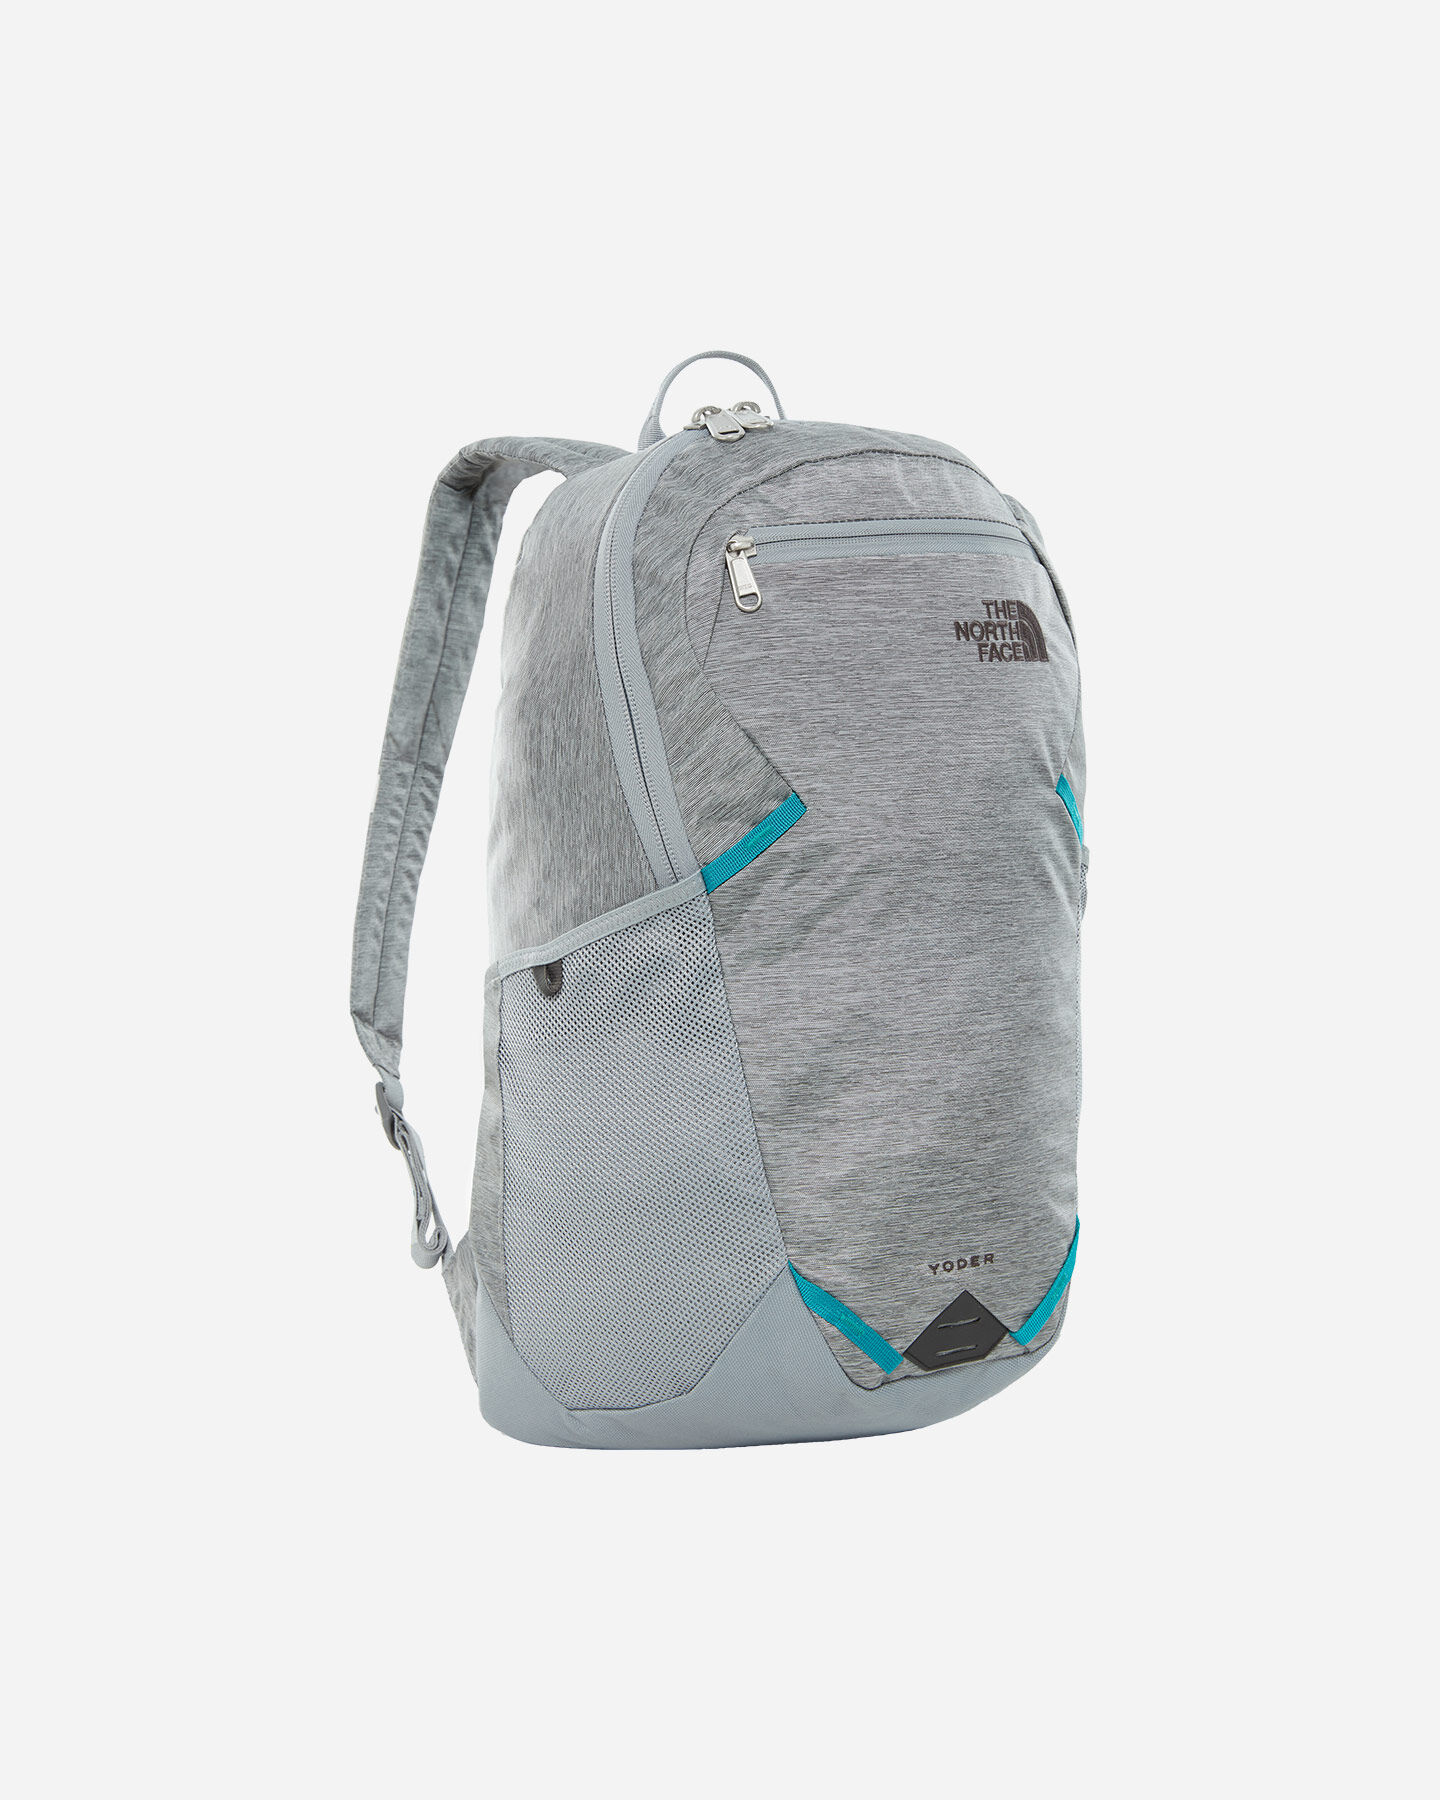 Zaino THE NORTH FACE YODER S5181568|PN6|OS scatto 0